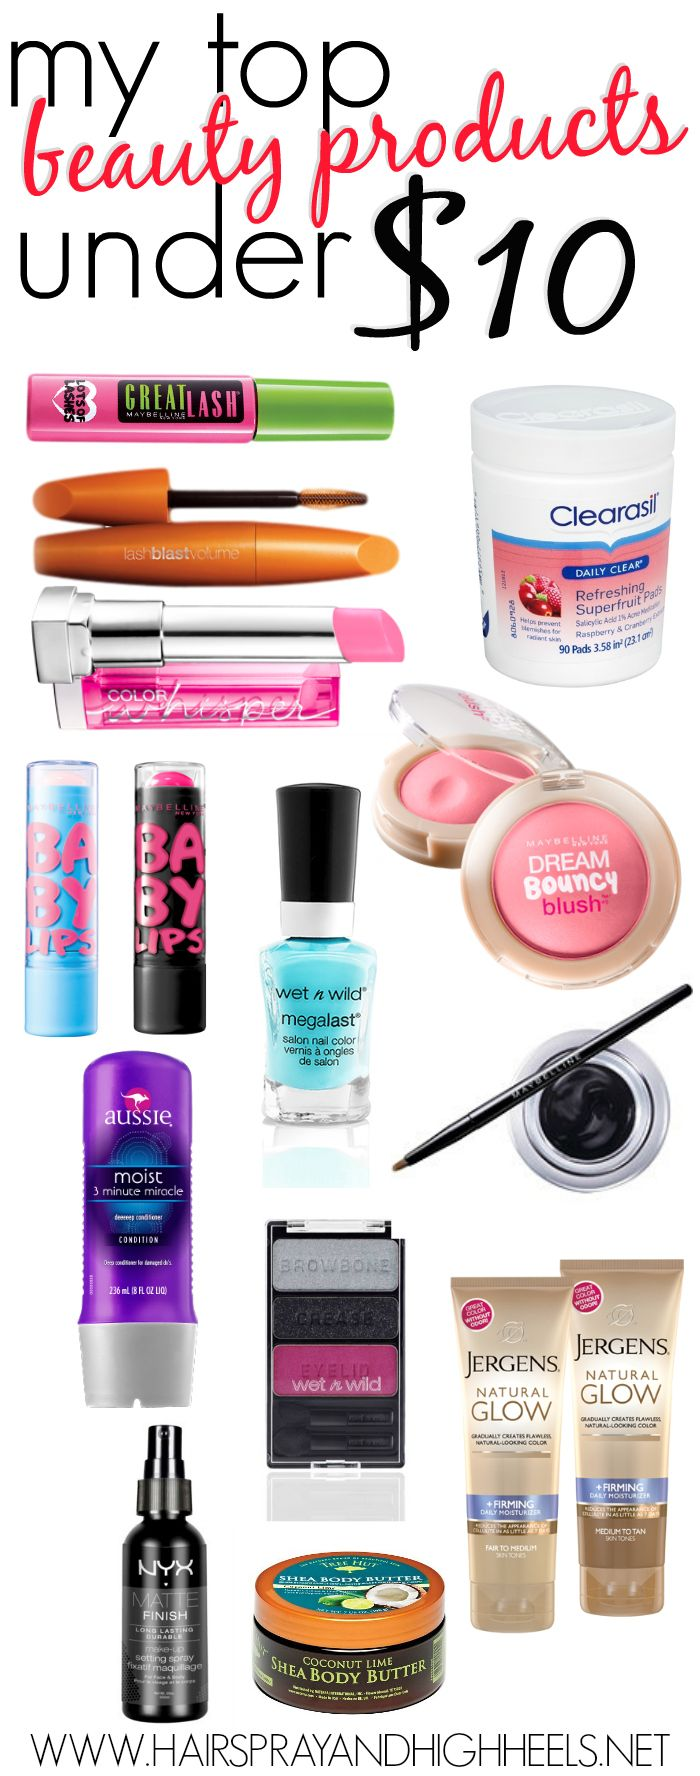 Top Beauty Products Under $10 via @Krista McNamara McNamara McNamara McNamara McNamara McNamara McNamara McNamara McNamara McNamara McNamara McNamara McNamara McNamara McNamara Knight and HighHeels                                                                                                            Hairspray and HighHeels